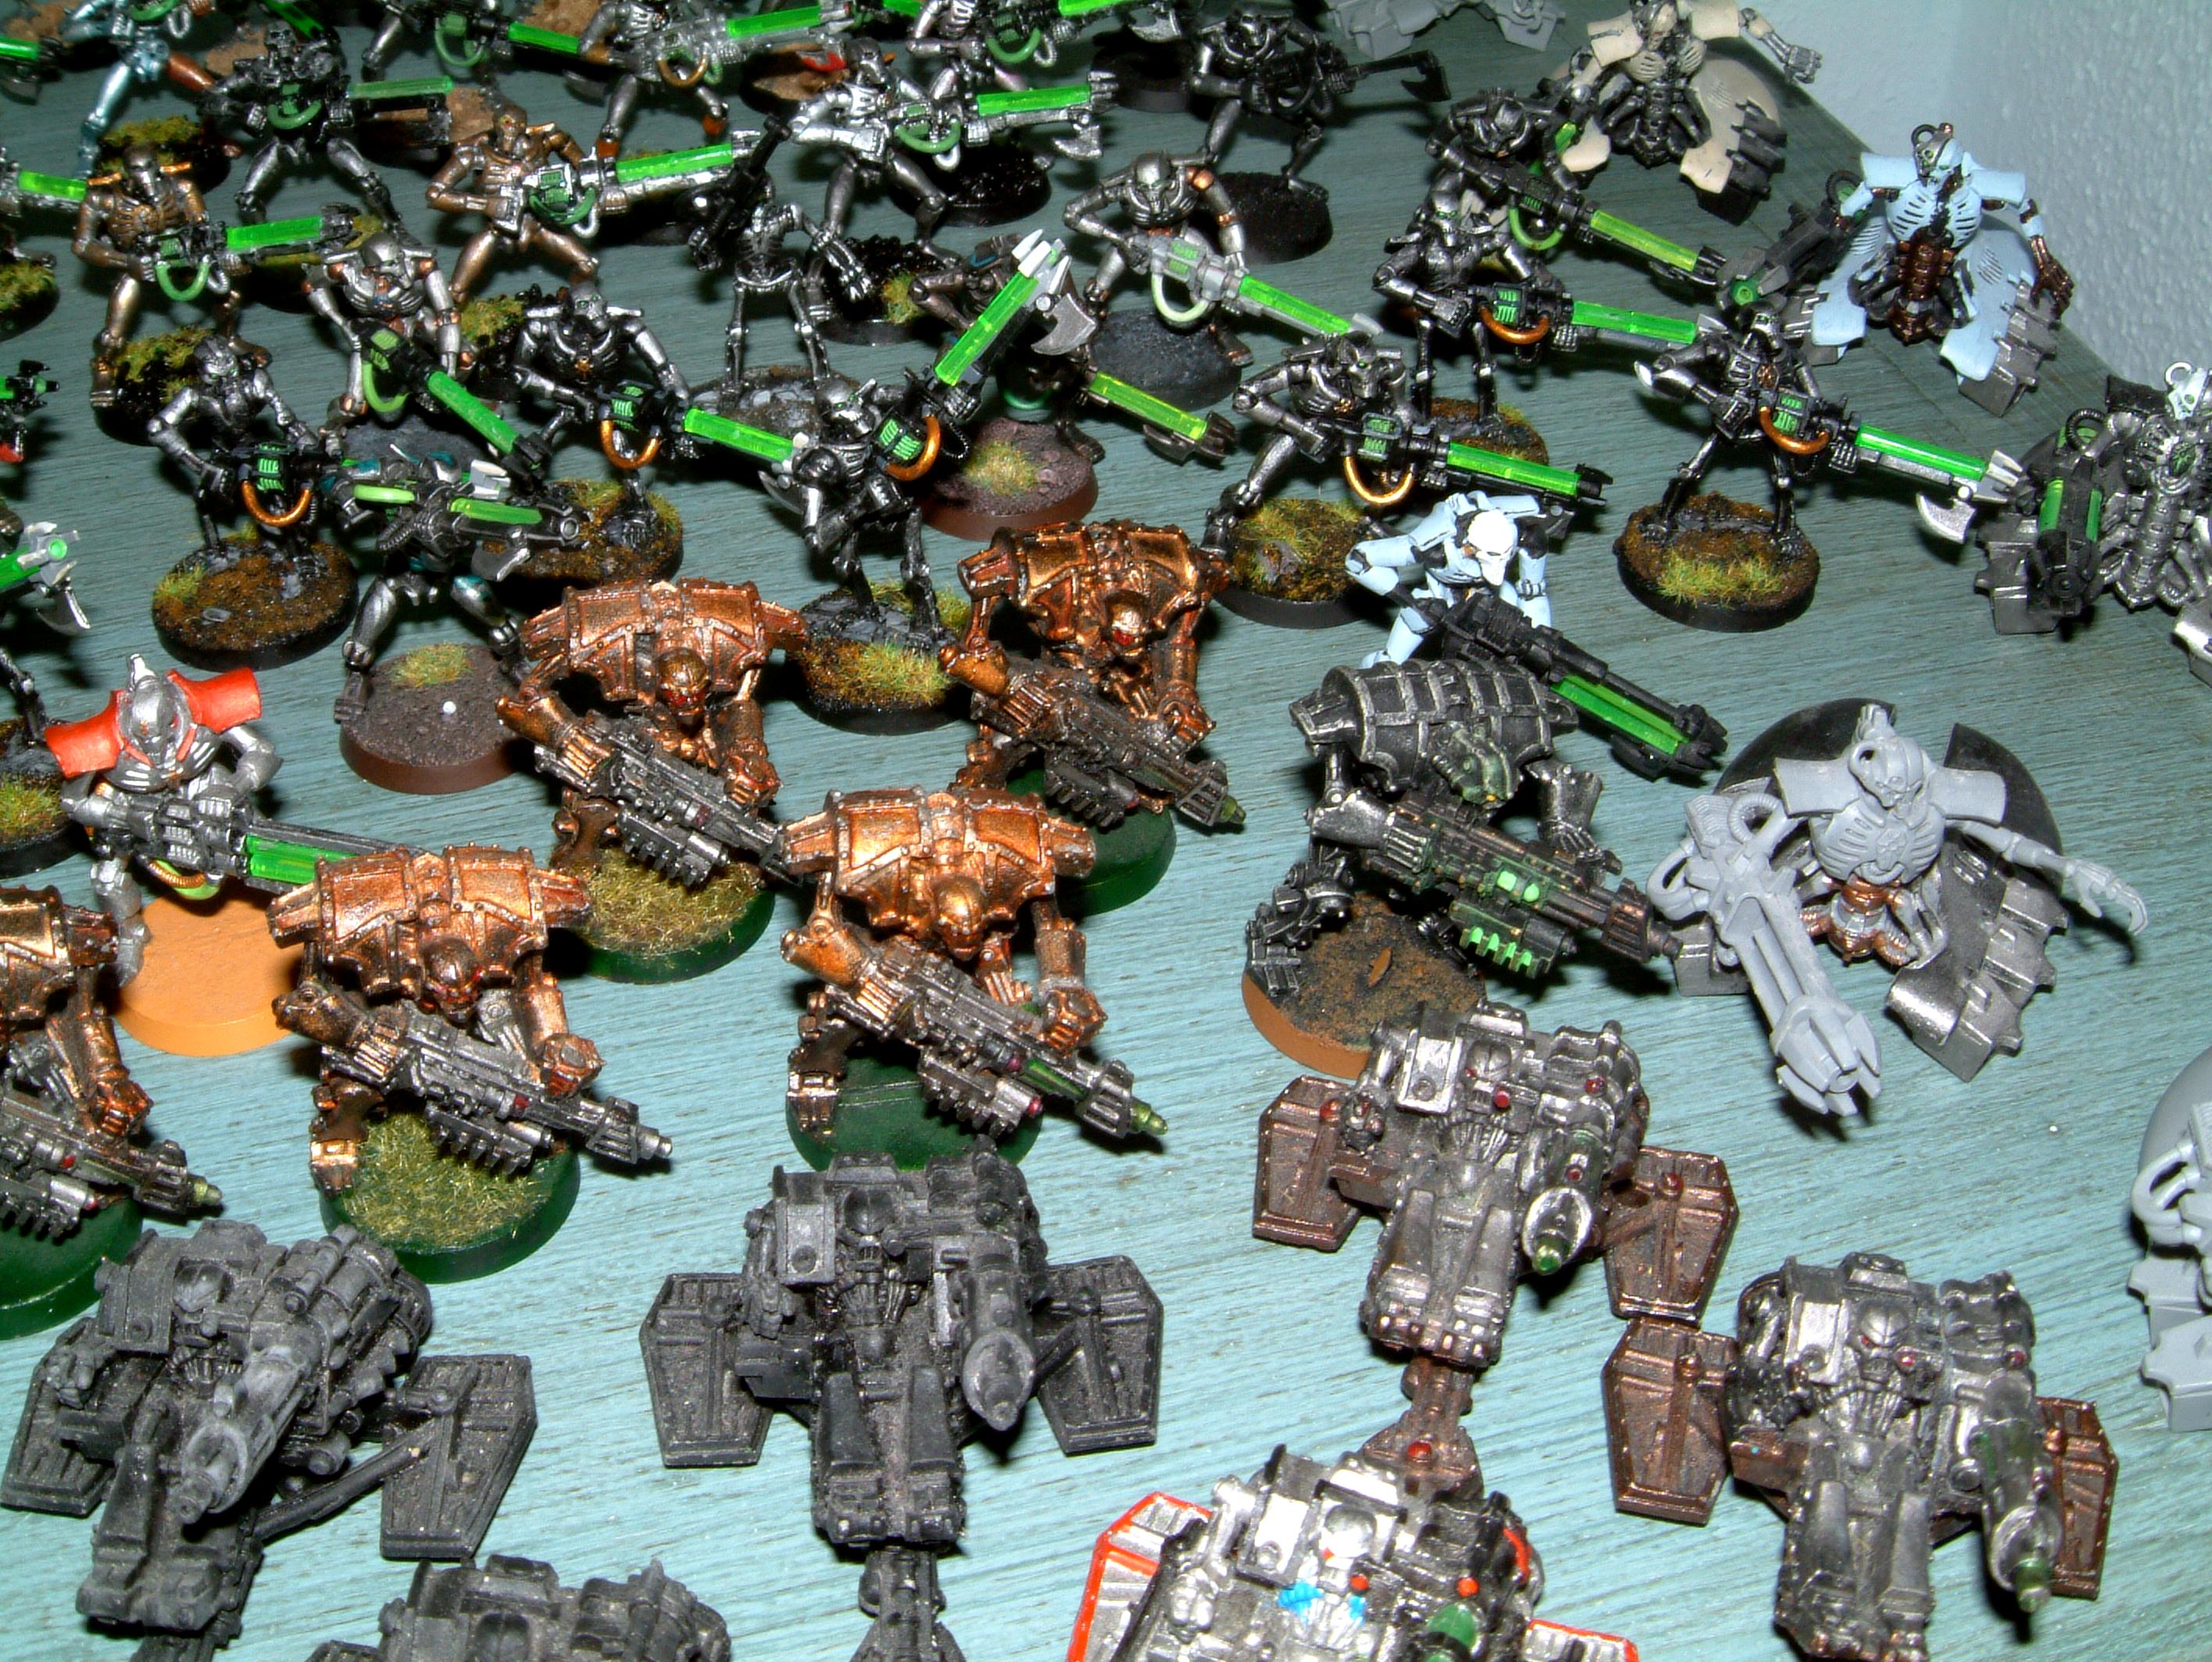 C´tan, Conversion, Cool, Lord, Monolith, Nec, Necrons, Old, Oldhammer, Quest, Rar, Rogue, Rogue Trader, Star, Style, Trader